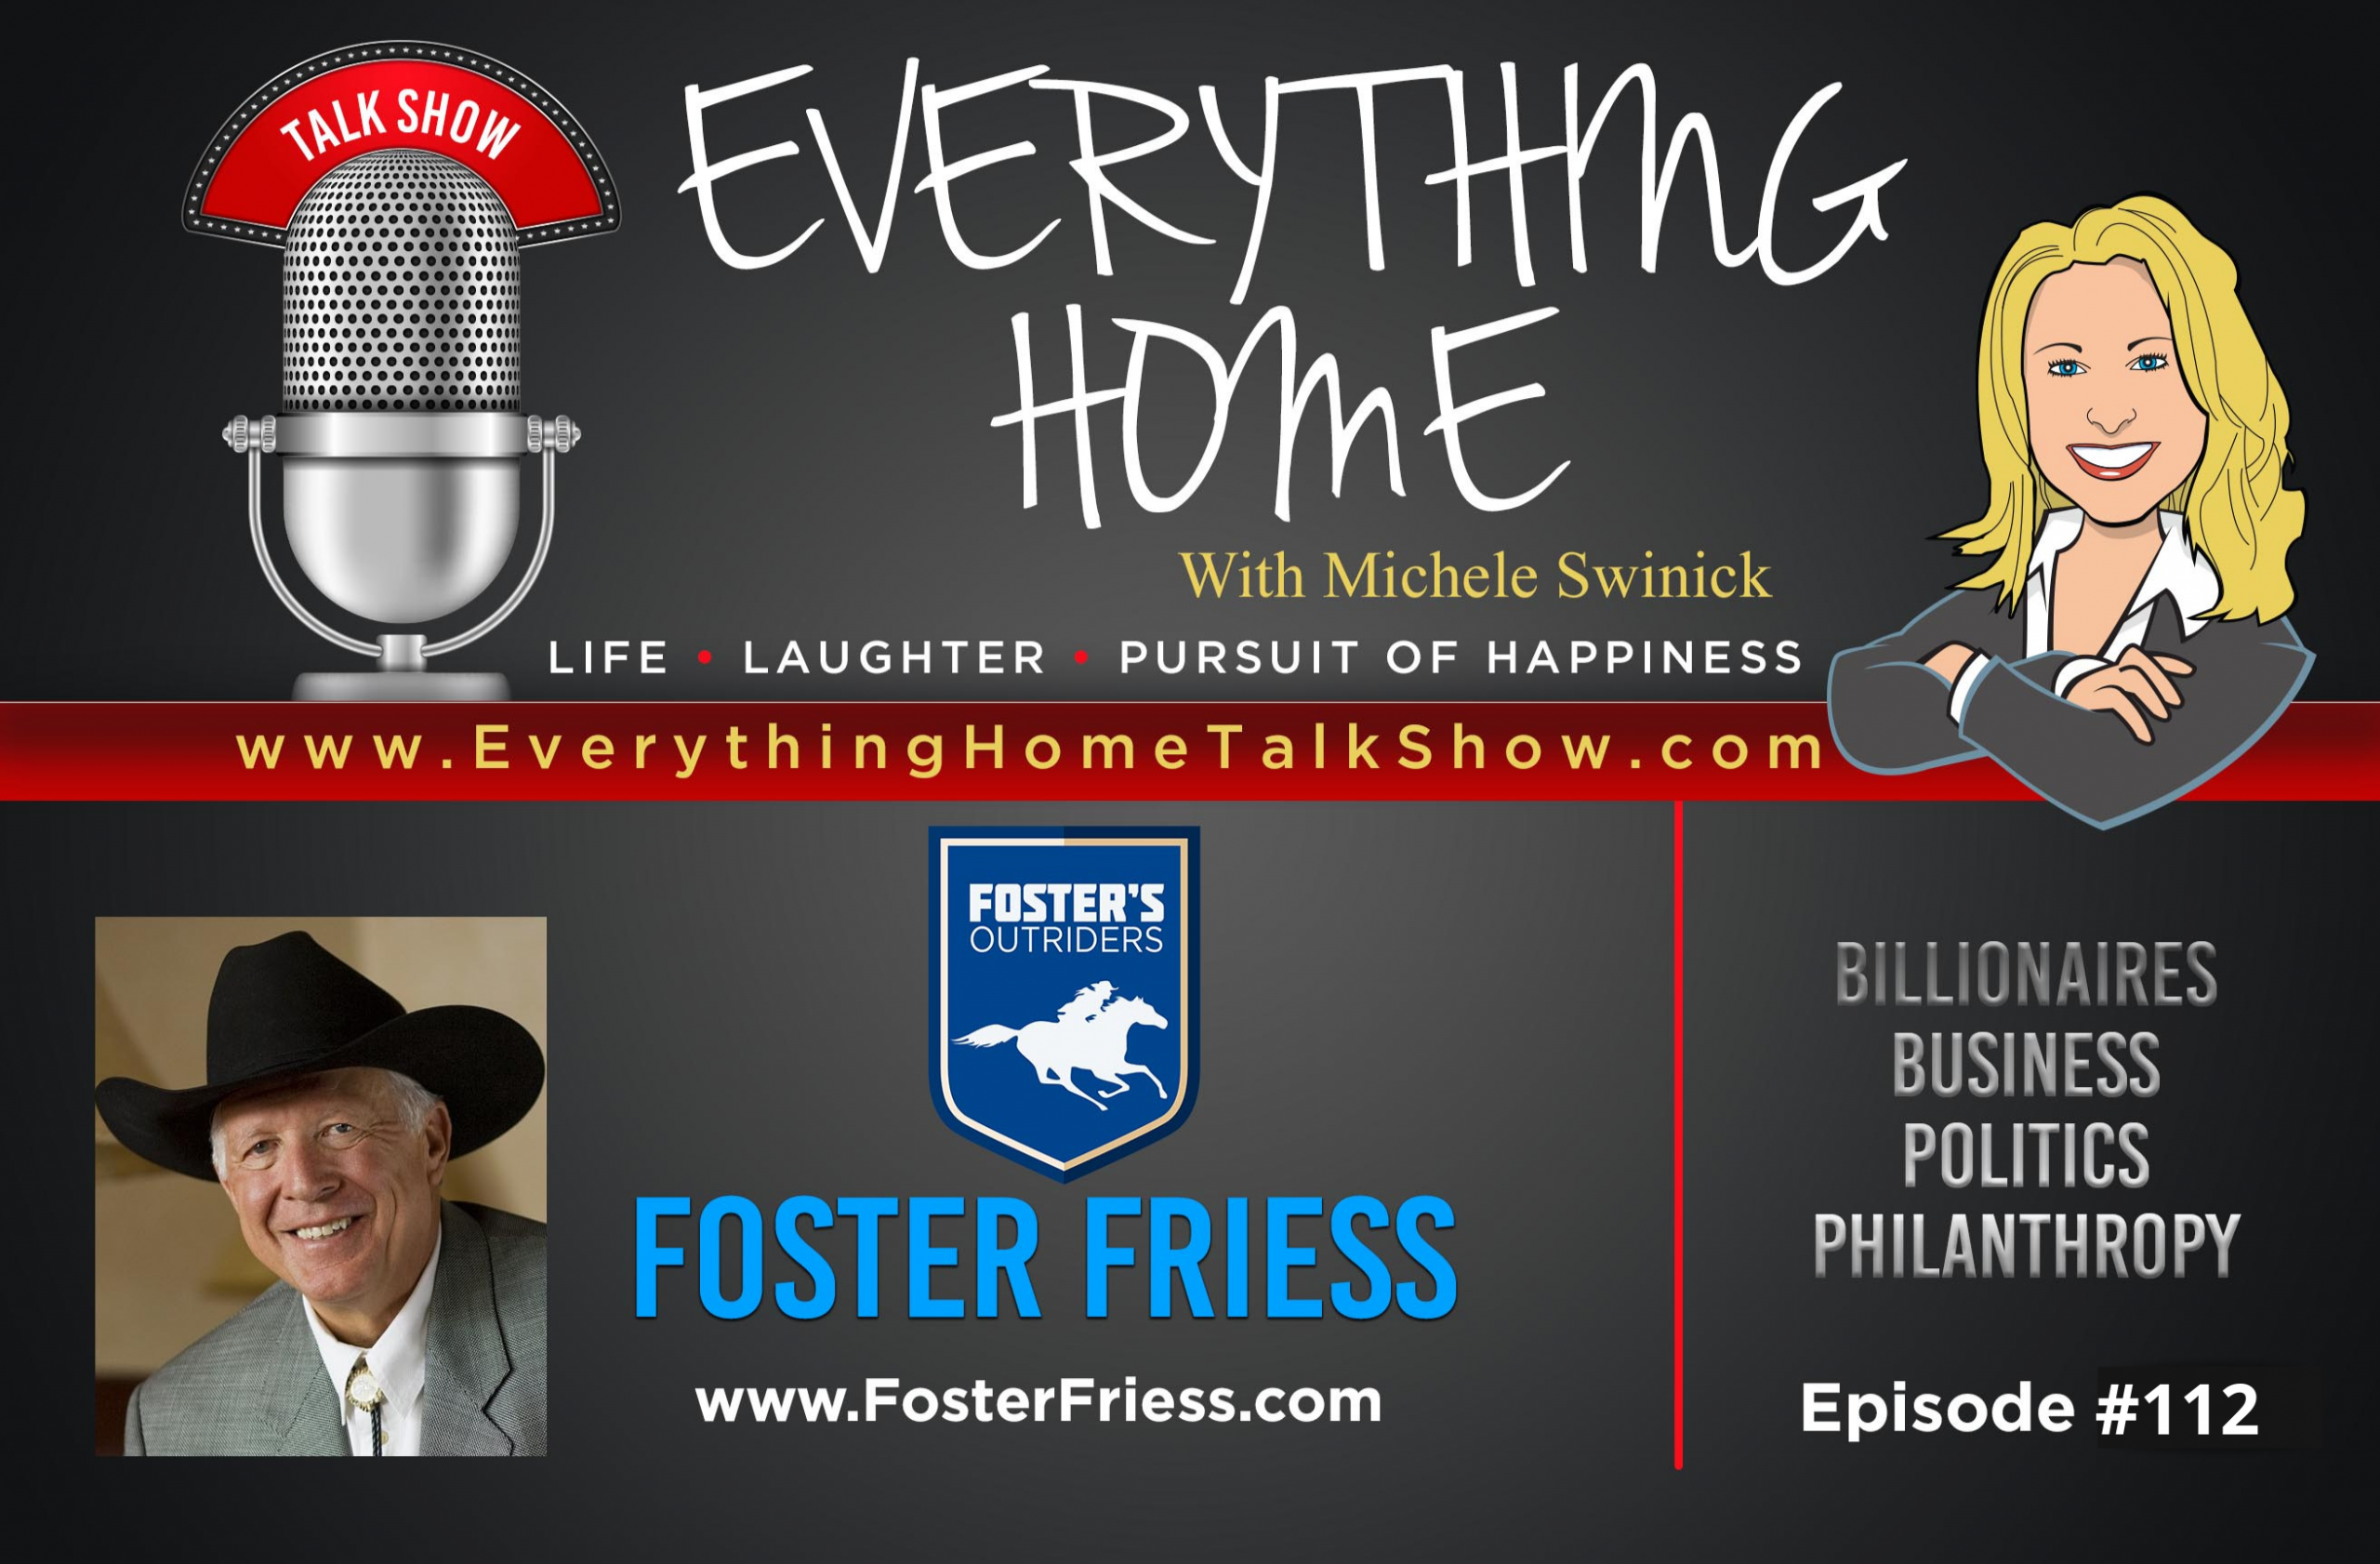 #112 - Billionaire Philanthropist & Businessman Foster Friess - An Inspirational Interview